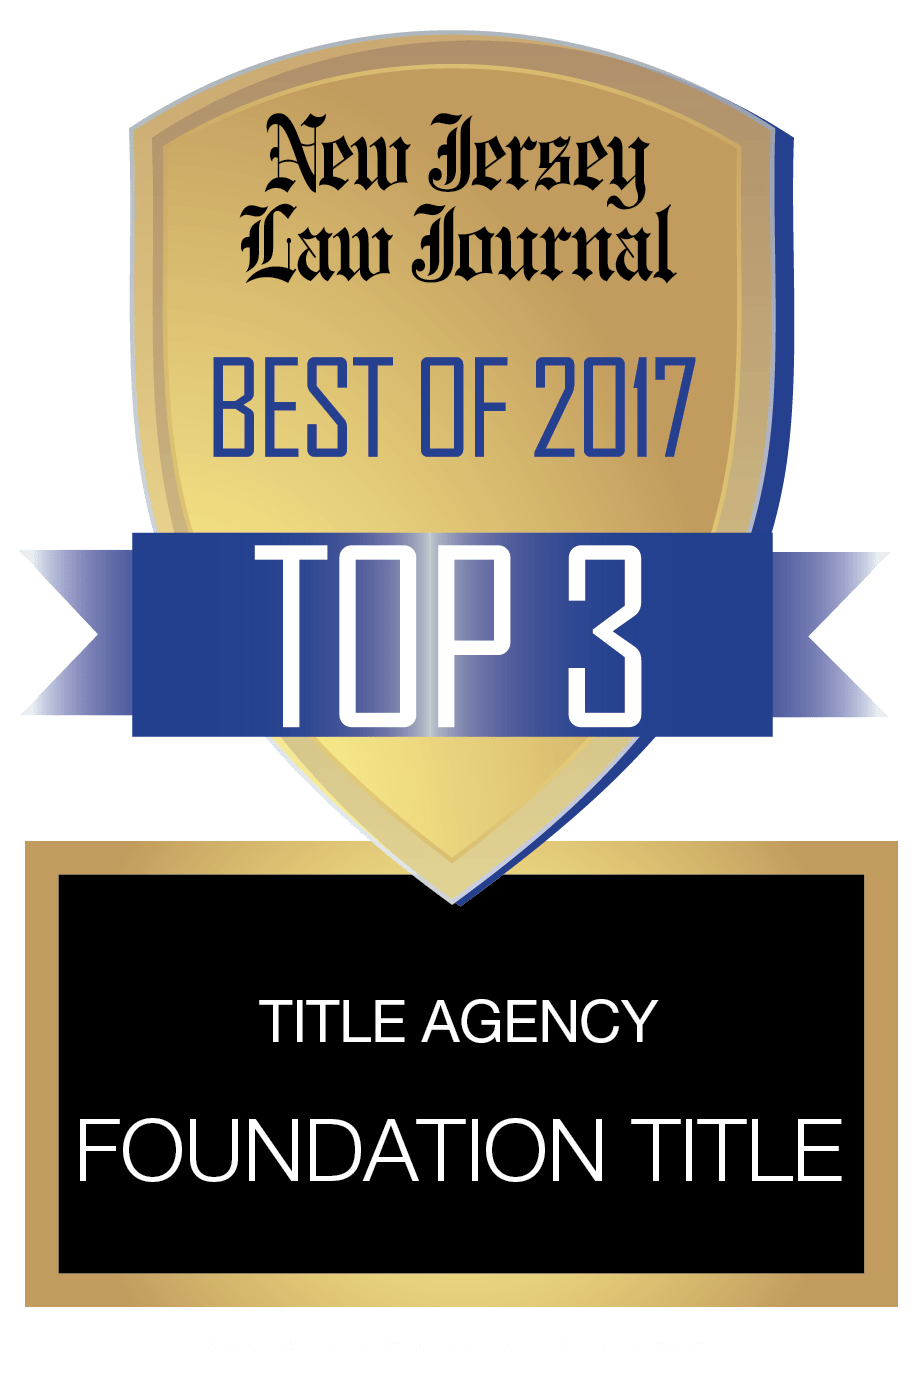 Foundation Title Named One of the Top Three Title Agencies by New Jersey Law Journal in Its Best of 2017 Readers' Poll